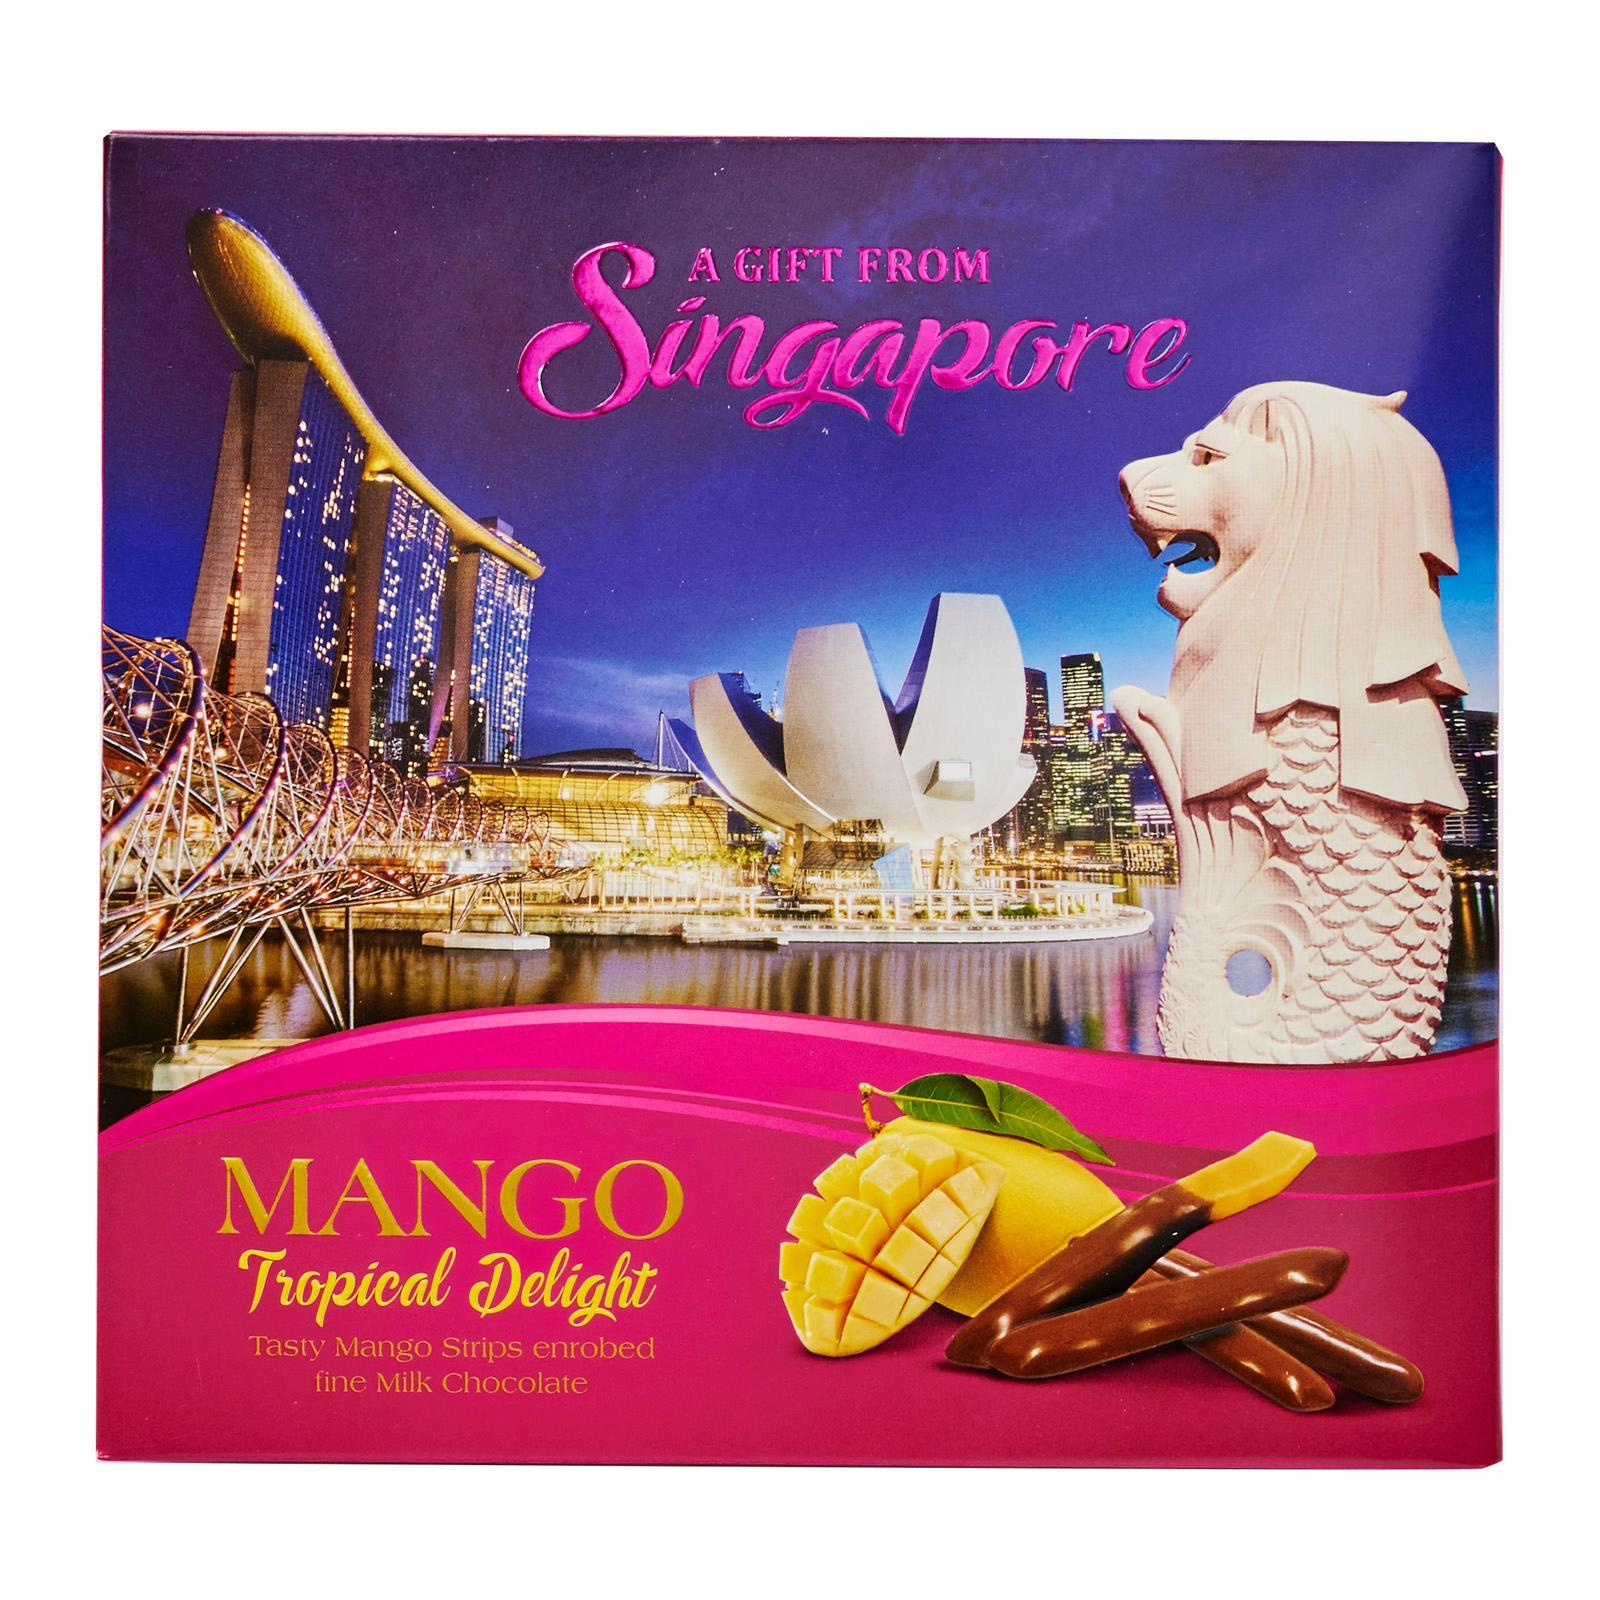 Manly Tropical Delight - Mango Strips In Chocolate